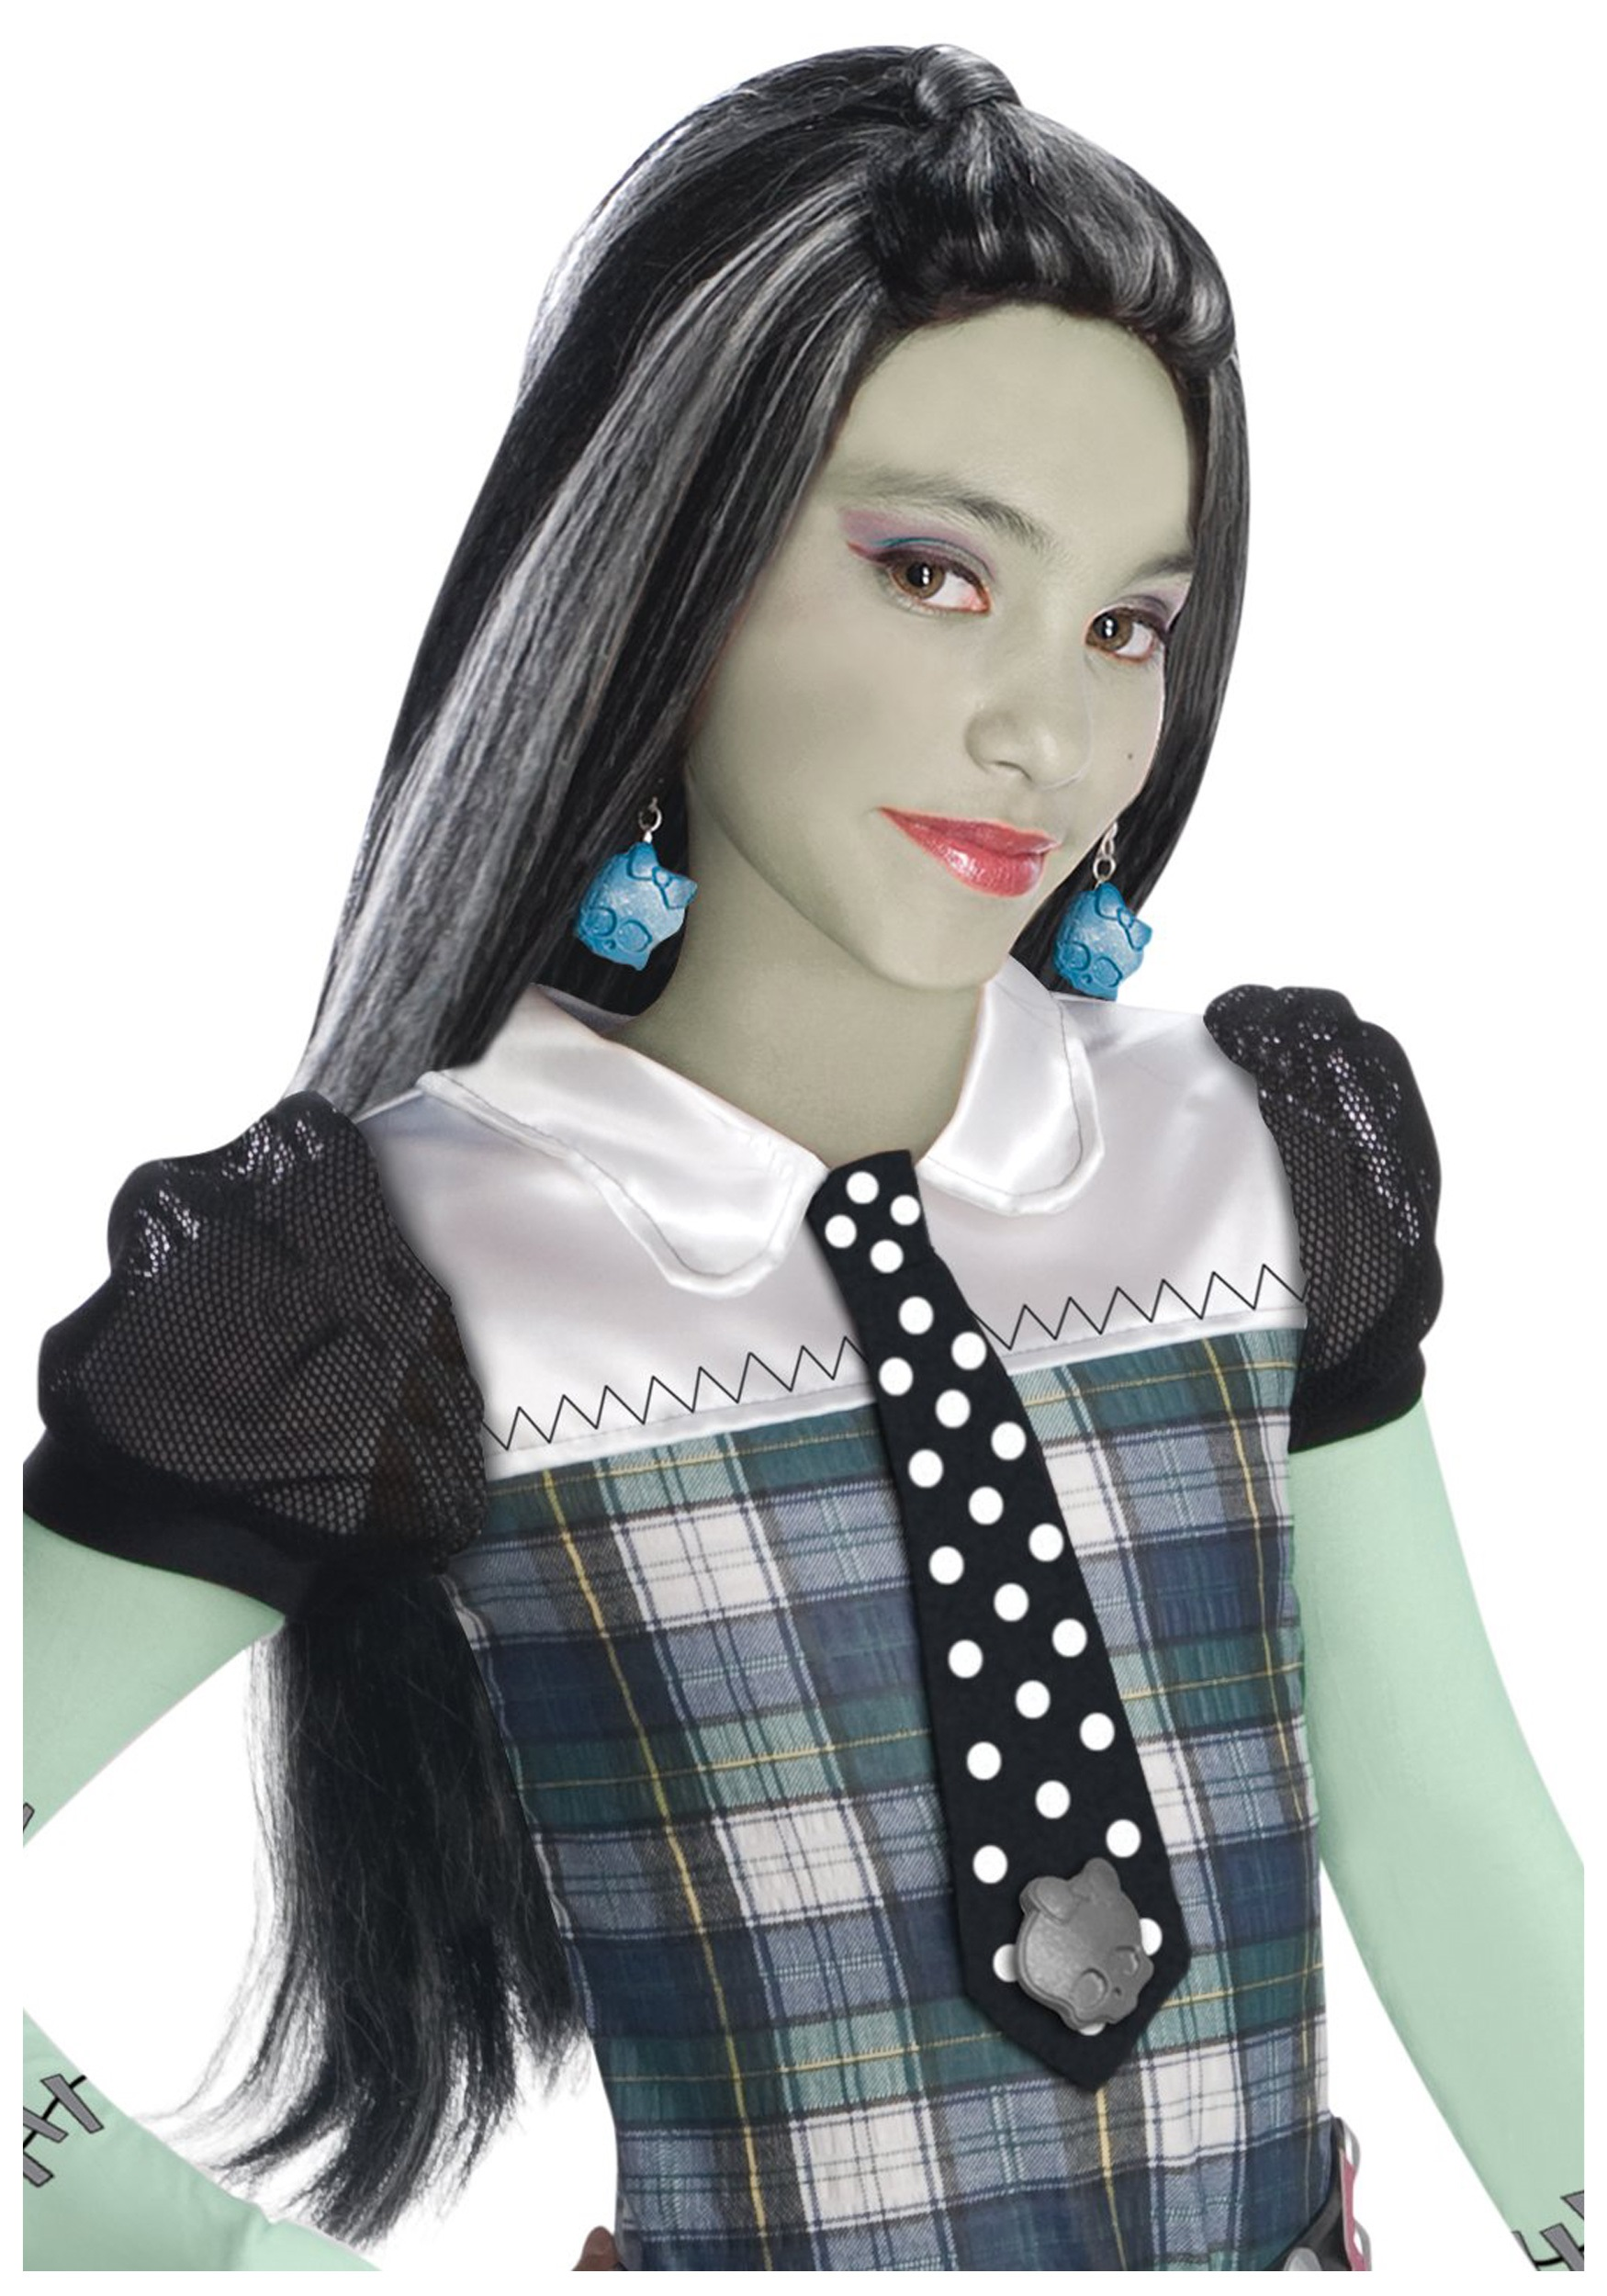 Frankie Stein Dress Up Wig Monster High Wigs